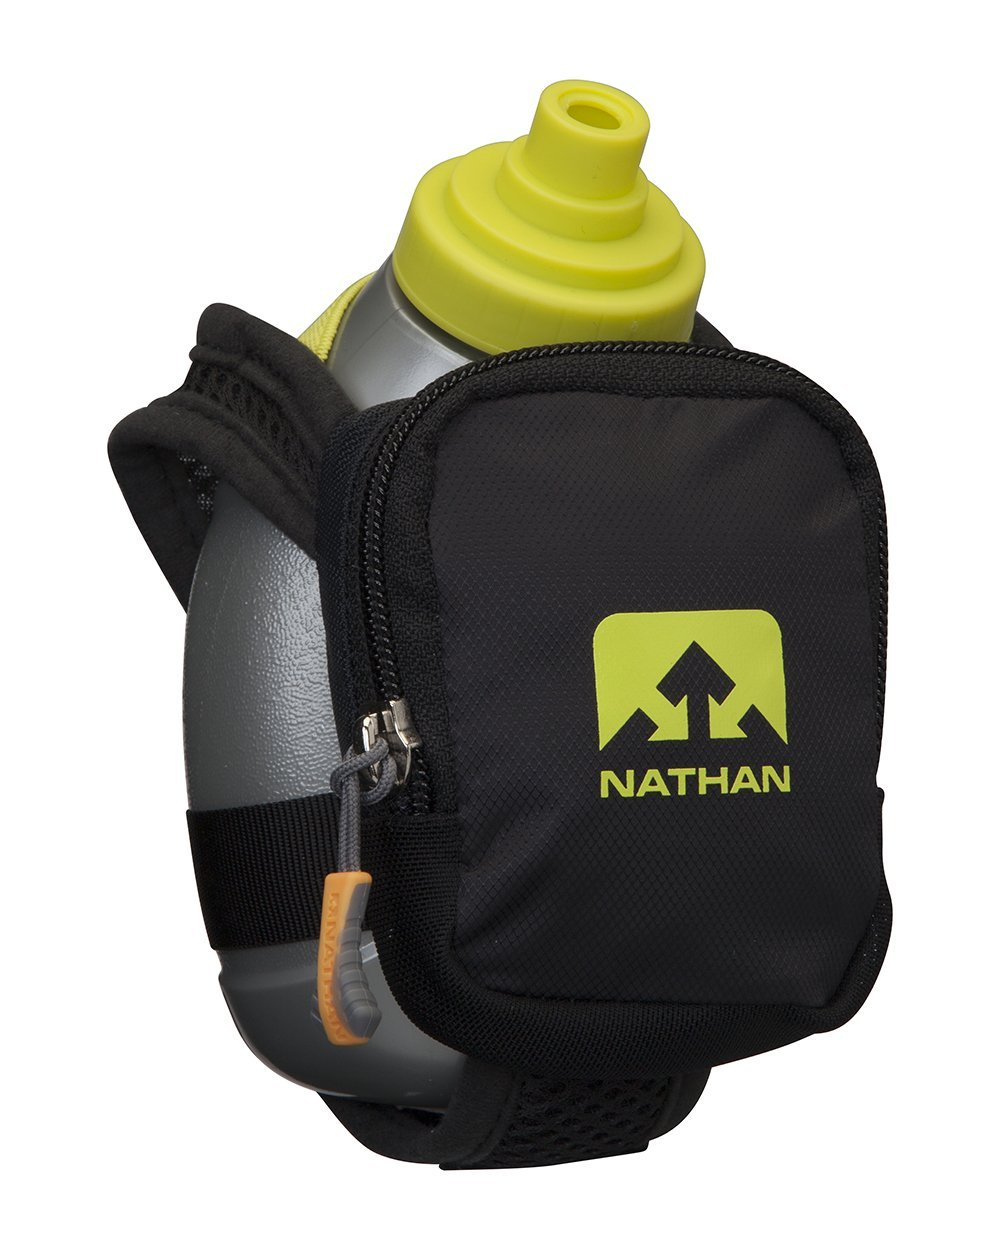 Nathan Quick Shot Plus Handheld Hydration Pack, Black by Nathan